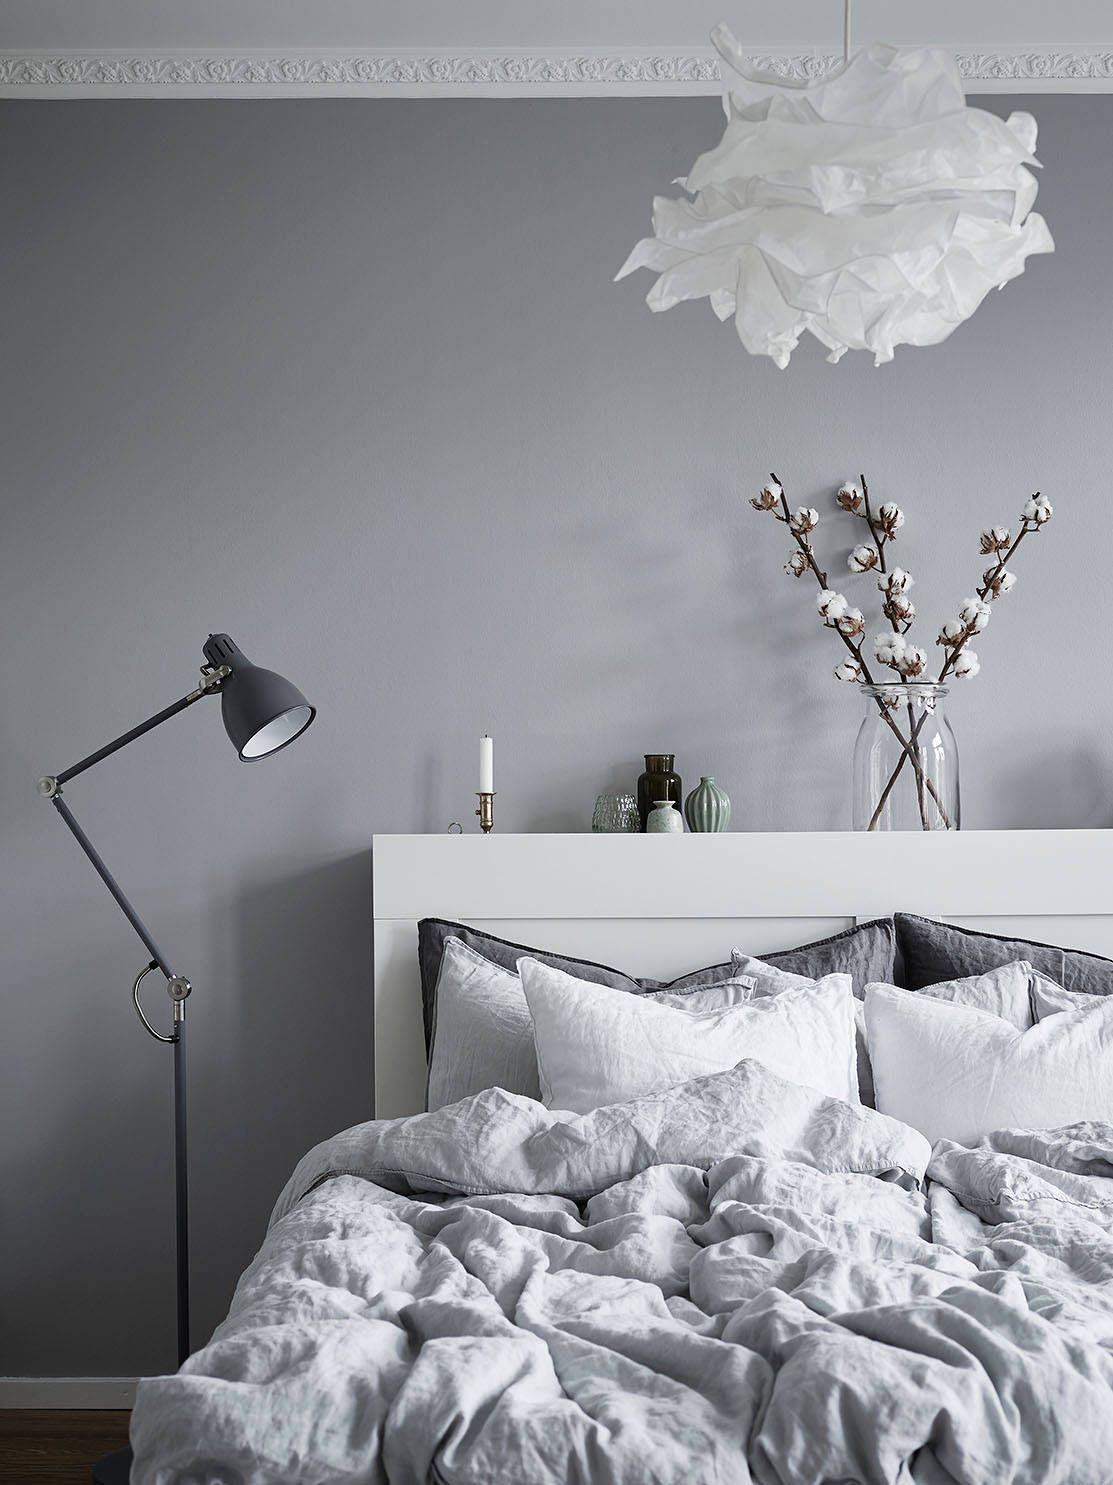 Schlafzimmer Wandfarbe Weiße Möbel This Dreamy Scandinavian Apartment Will Give You Butterflies - Daily Dream Decor | Graue Wand Schlafzimmer, Wohnung, Graue Wände